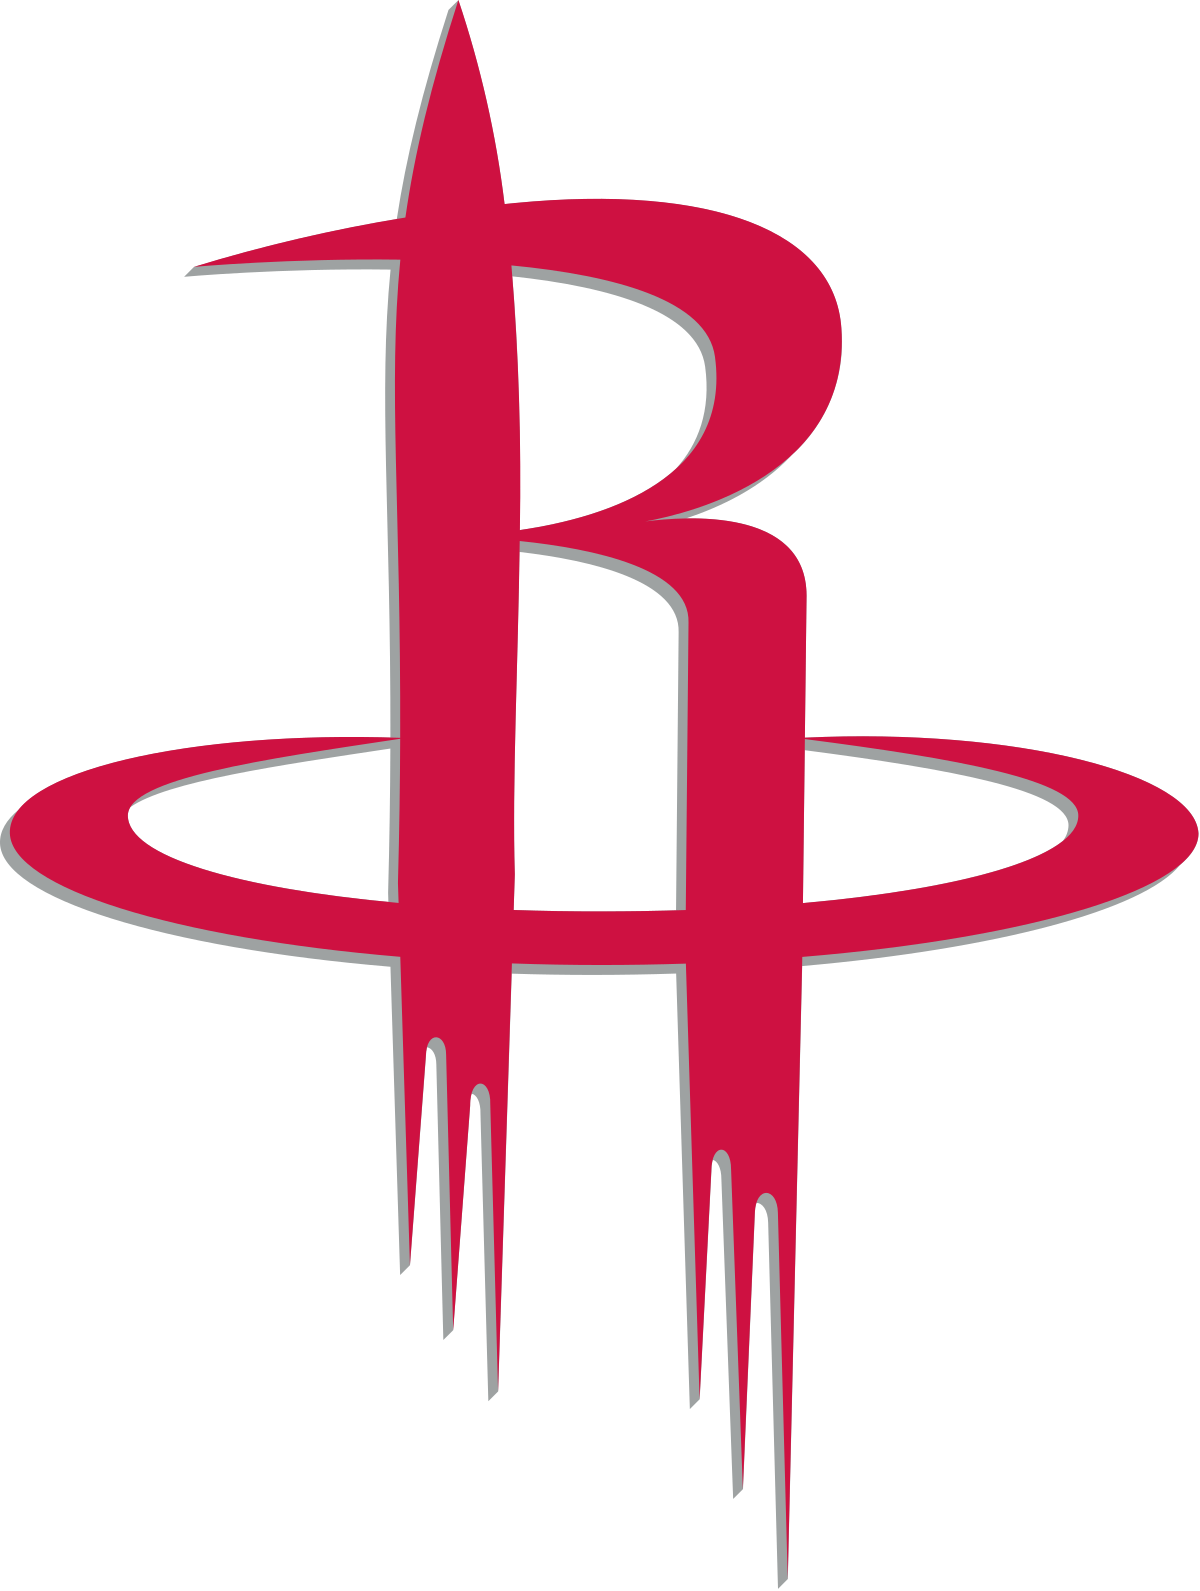 Houston Rockets.